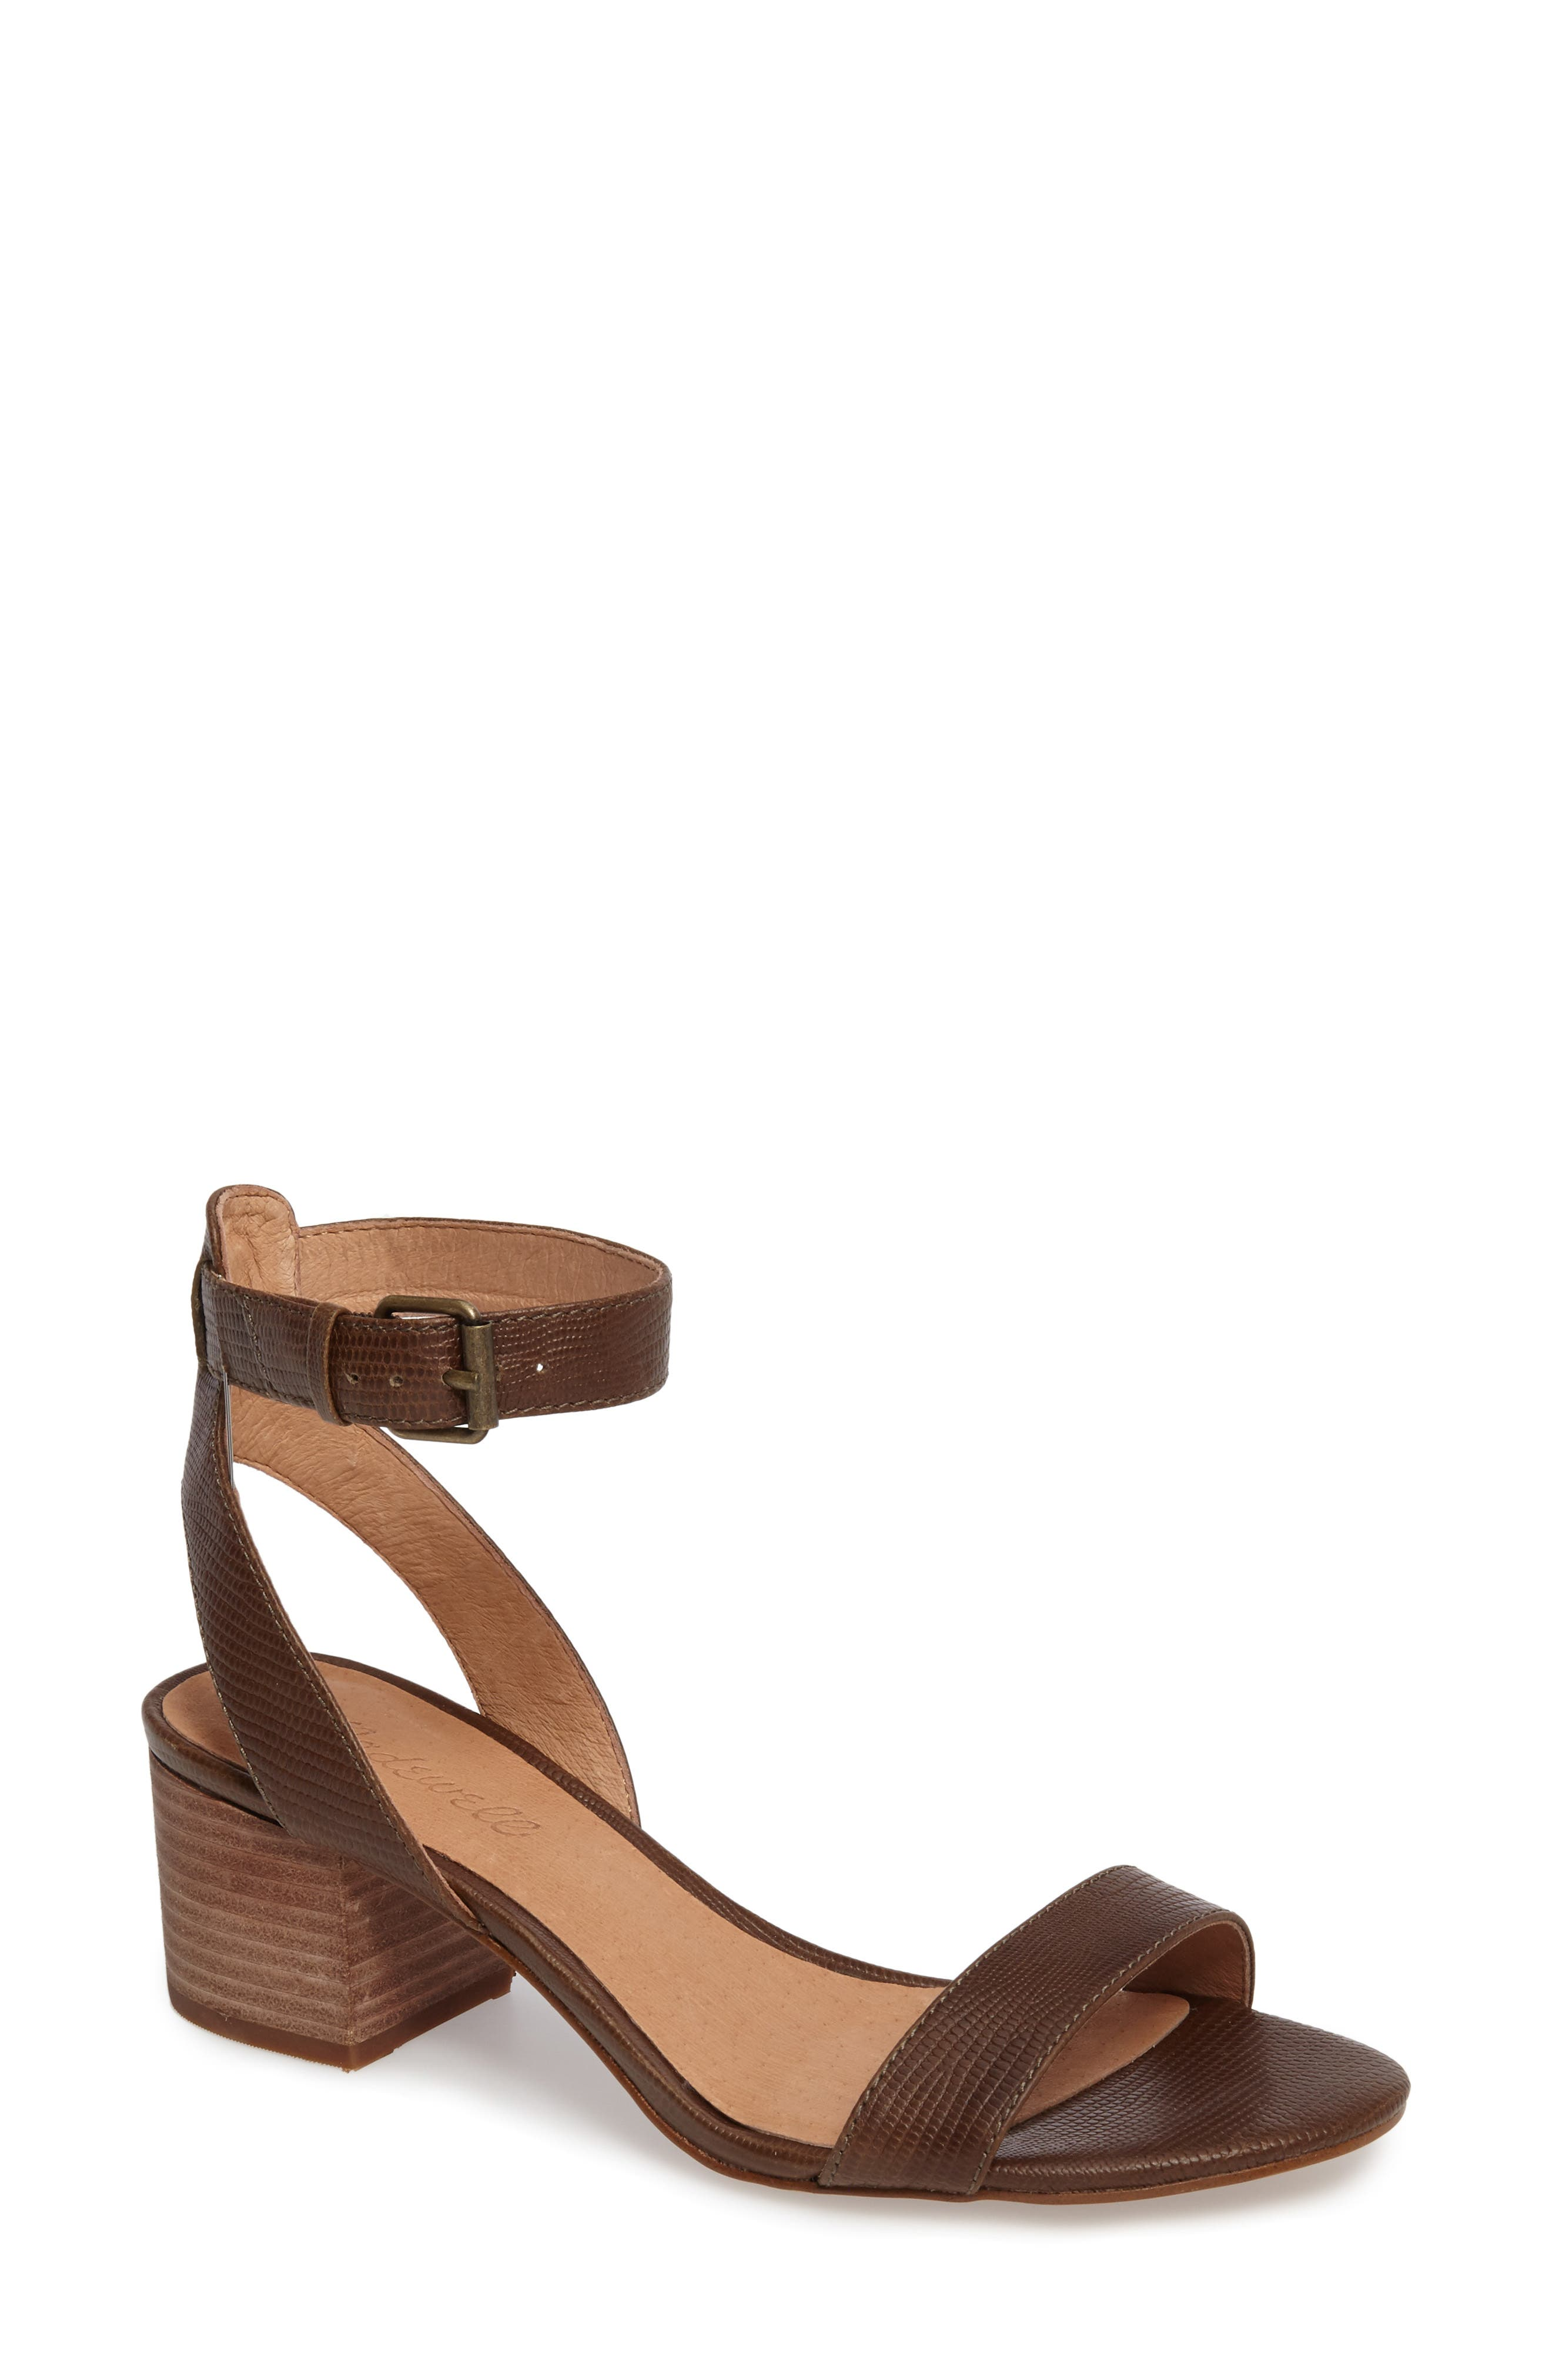 Alice Embossed Ankle Wrap Sandal,                             Main thumbnail 1, color,                             250